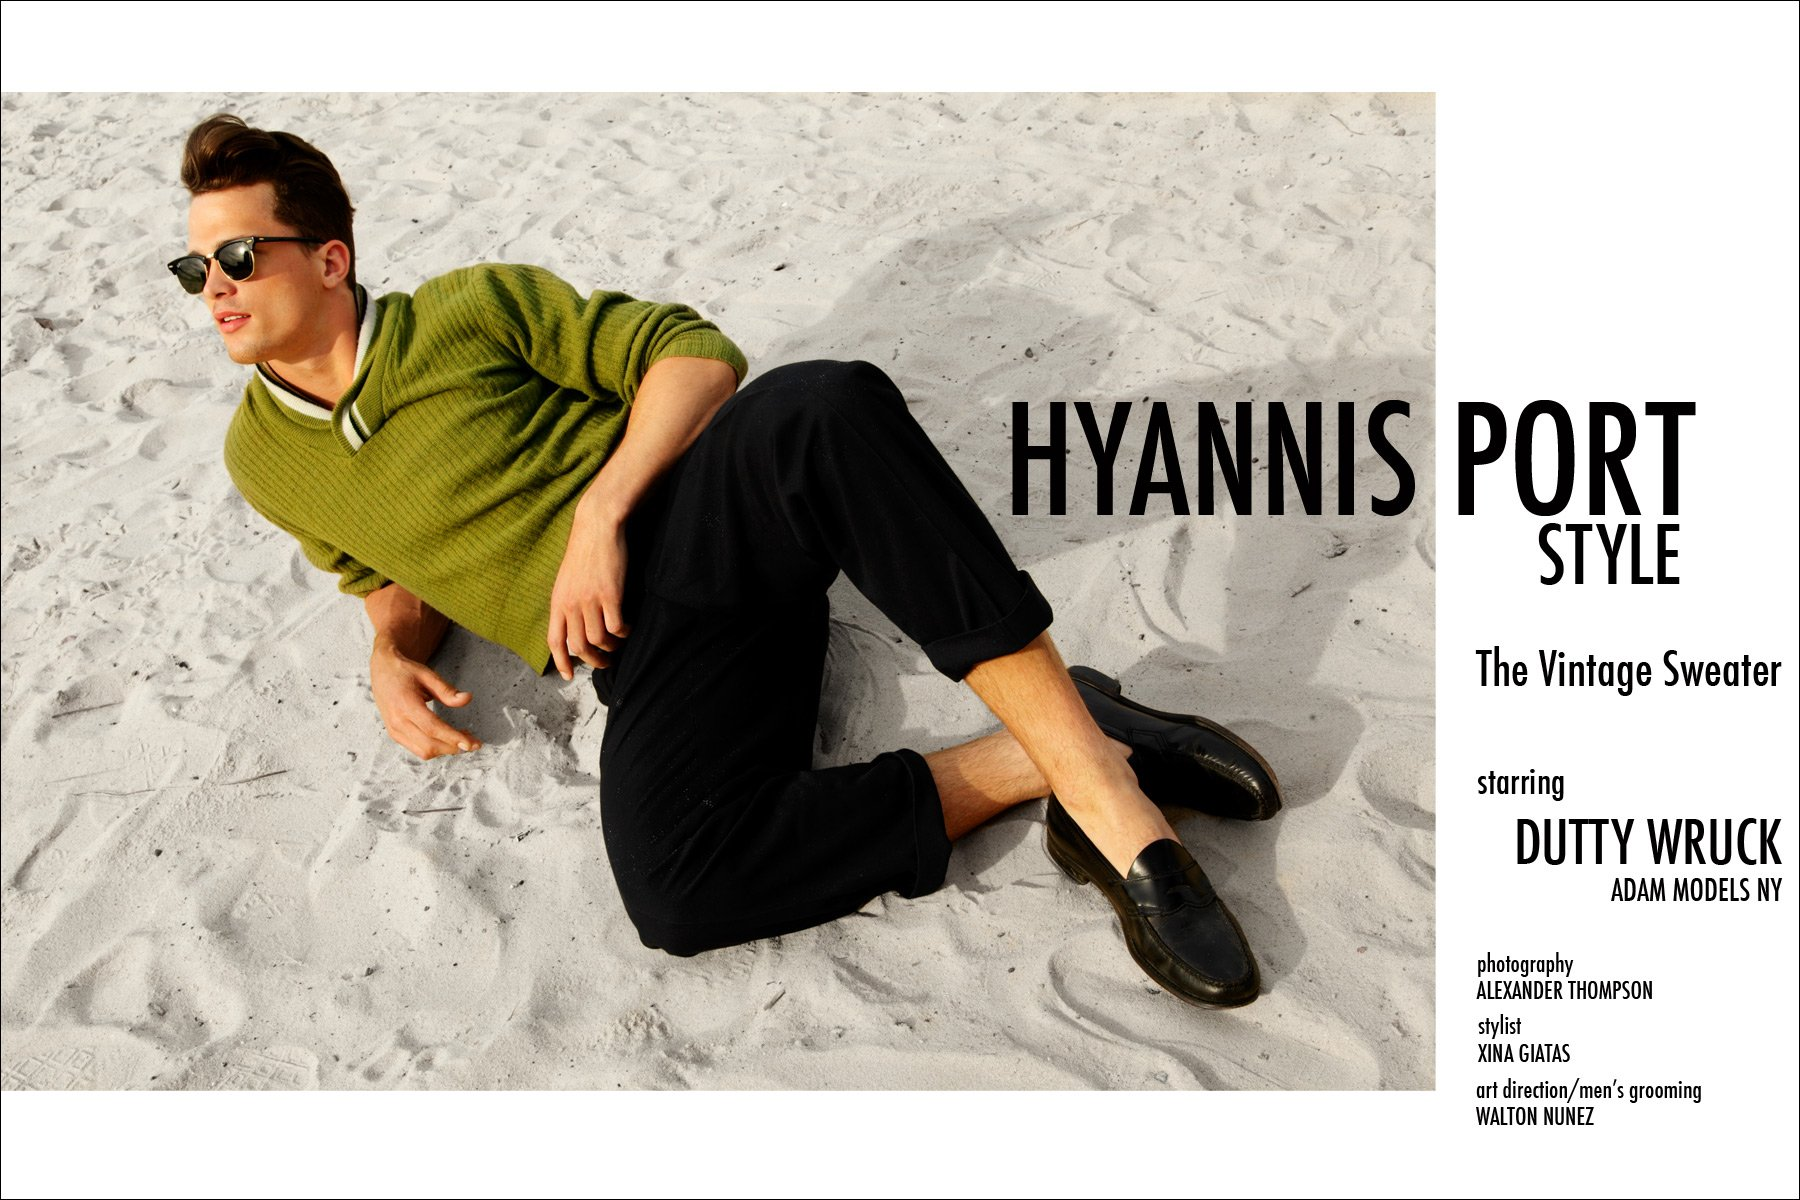 """Hyannis Port Style"", a men's vintage sweater editorial starring Dutty Wruck from Adam Models NY. Photographed by Alexander Thompson in New York City."